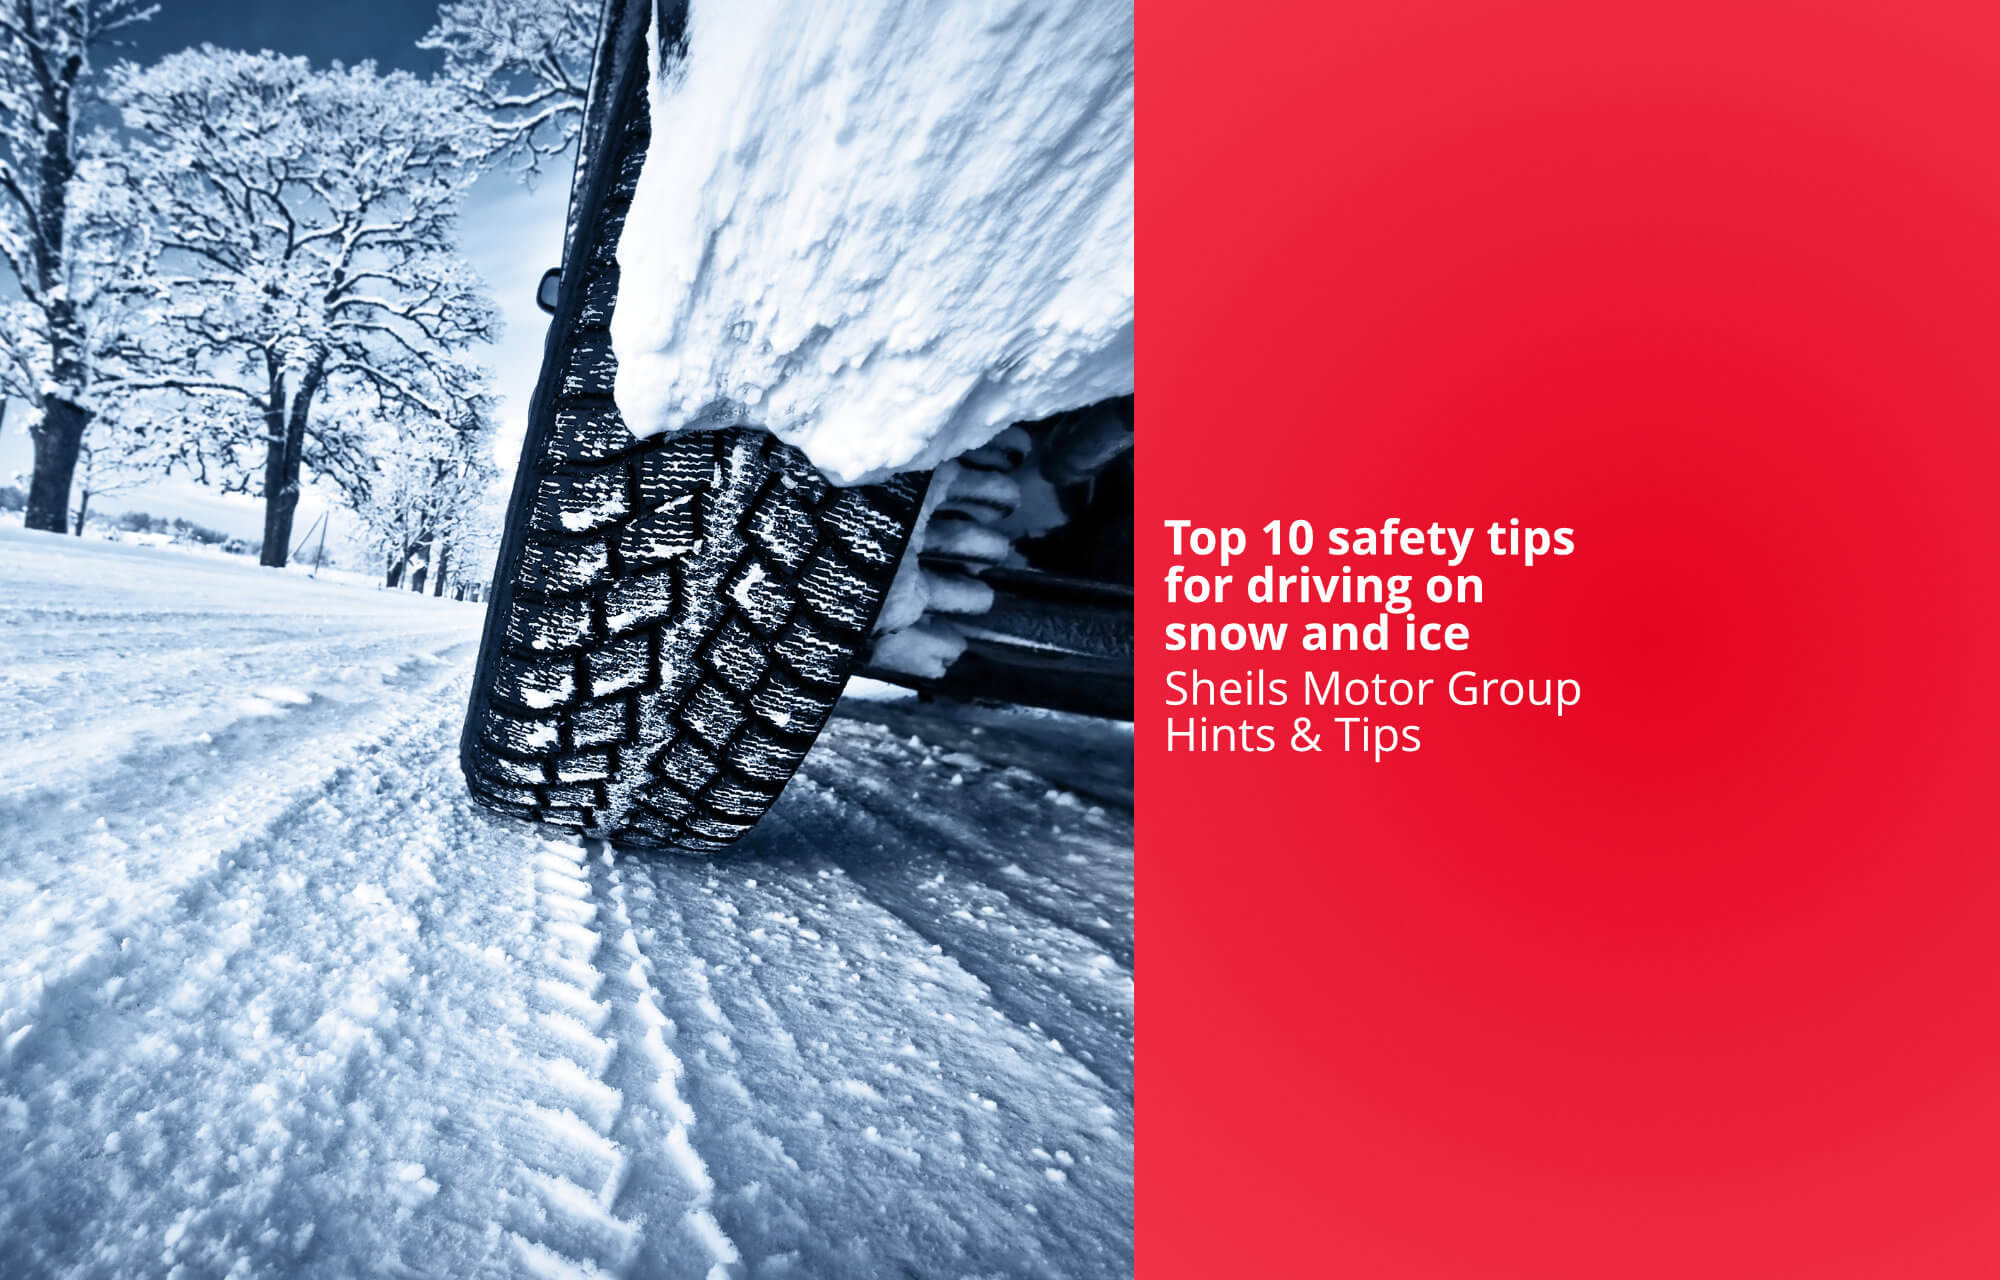 Sheils Motor Group Hints & Tips